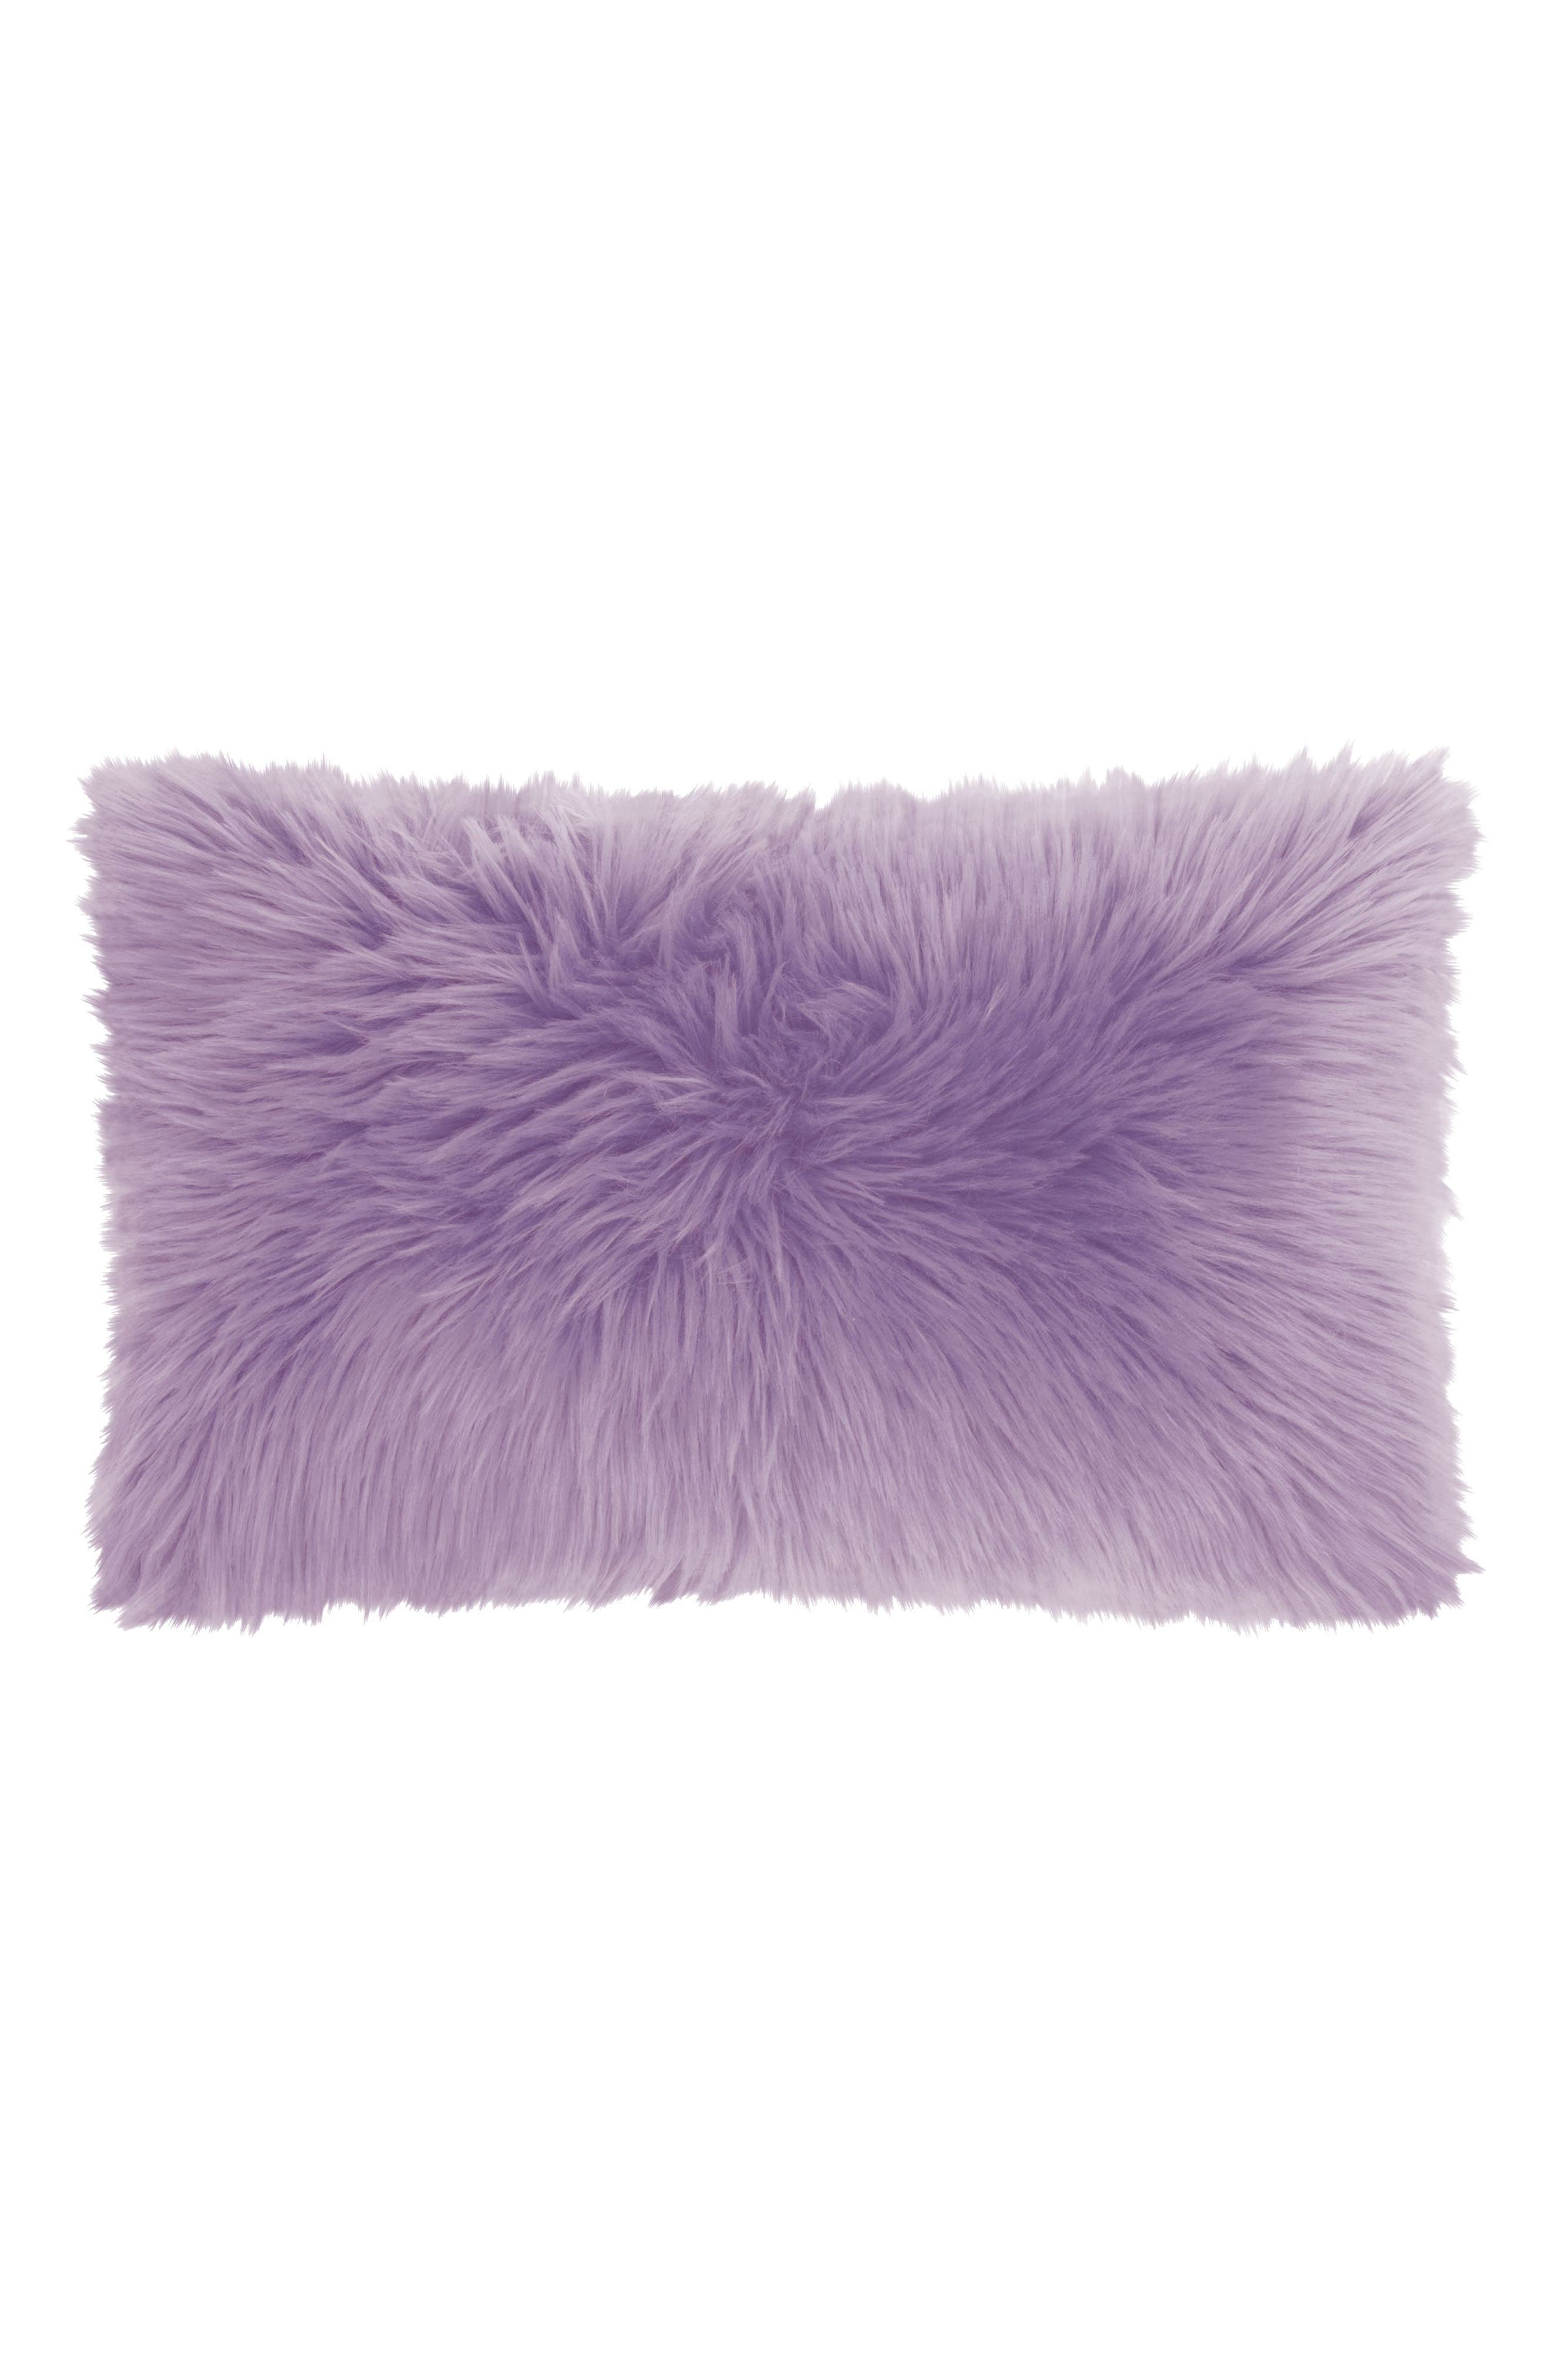 Faux Fur Pillow,                             Main thumbnail 1, color,                             540